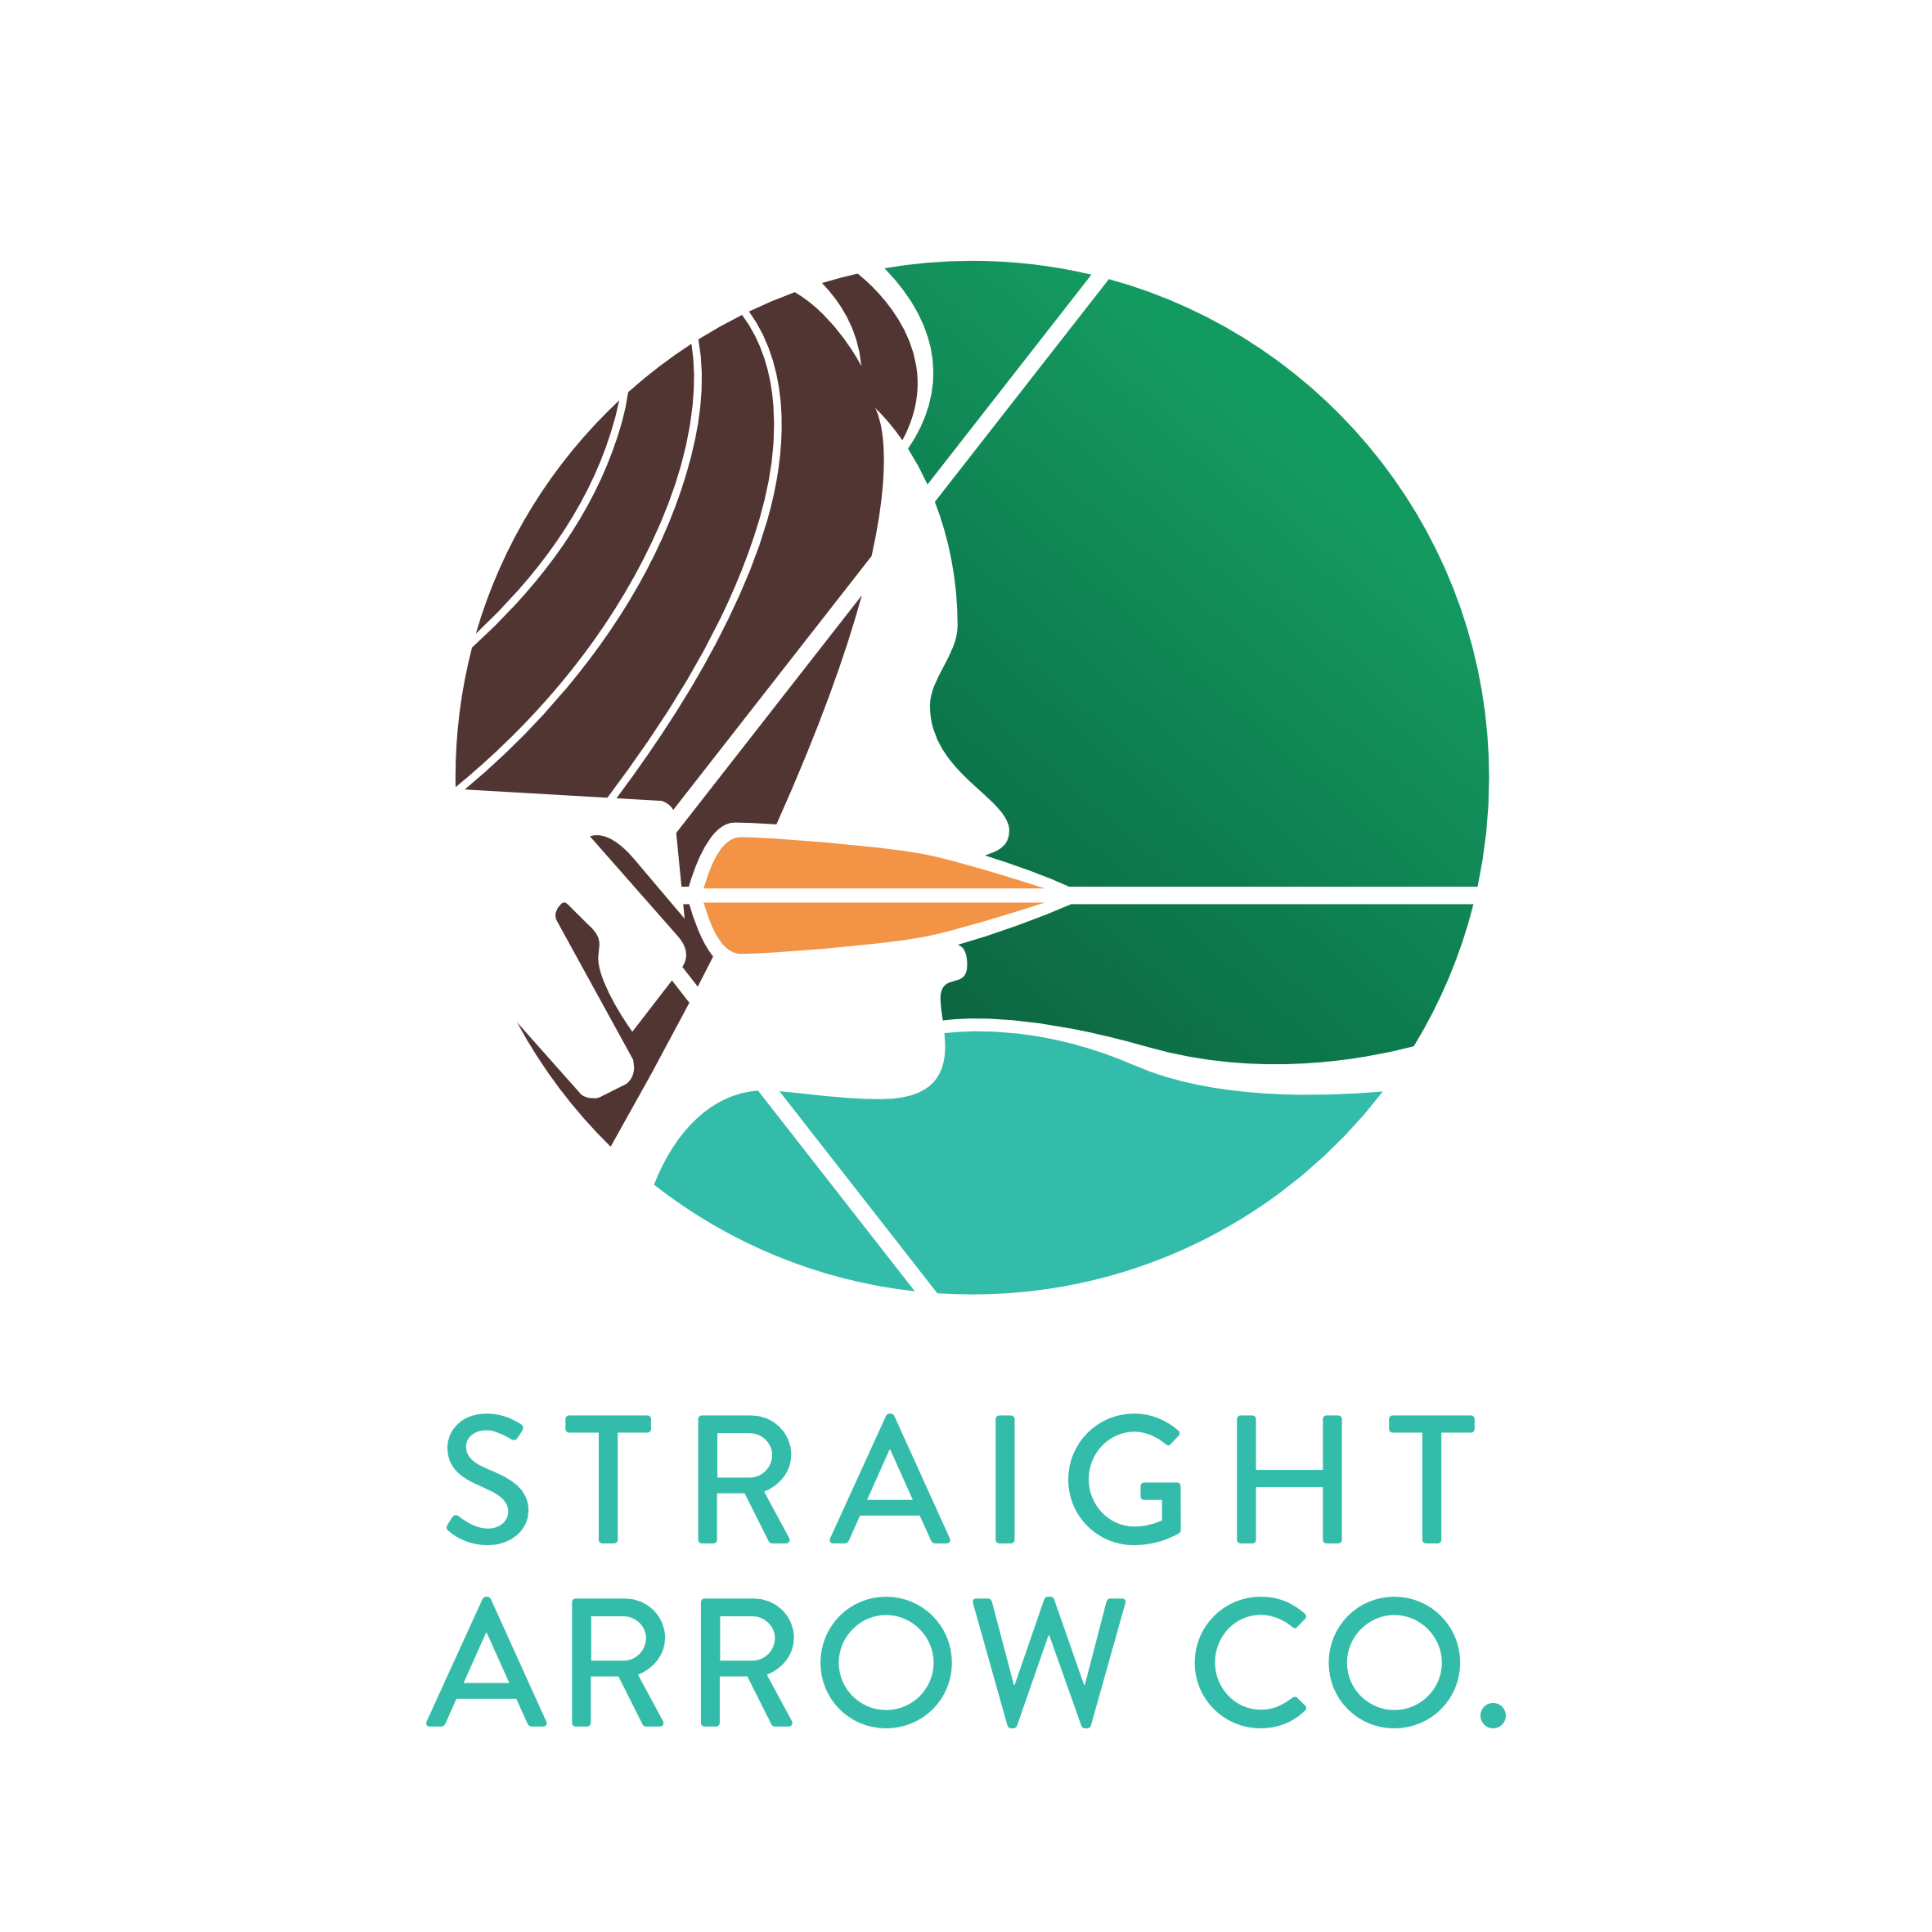 Empowerment expert needs striking and sophisticated new logo